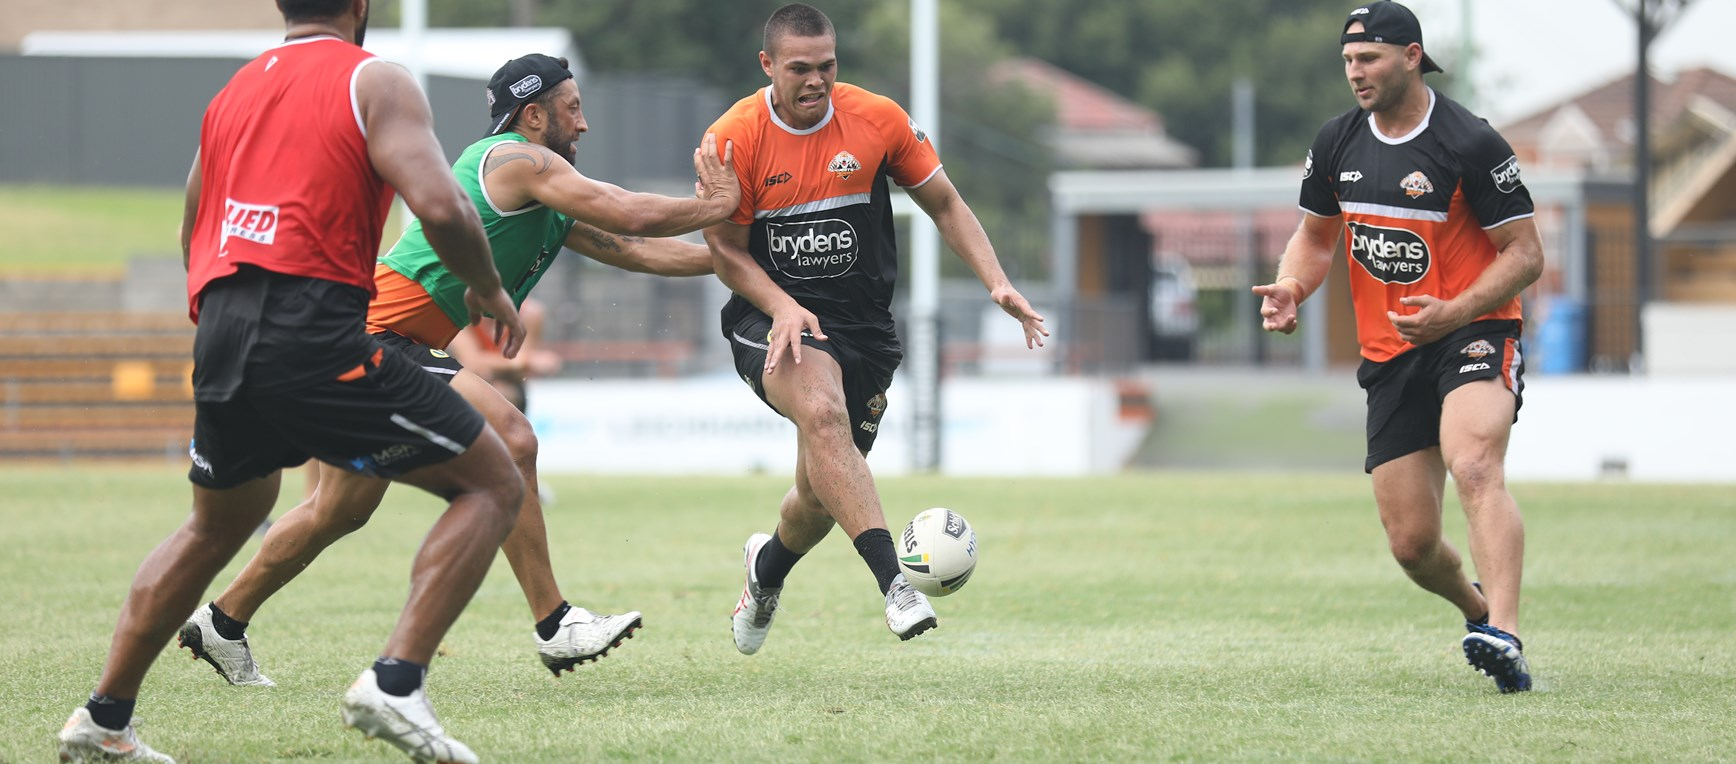 Gallery: Field session at Leichhardt Oval